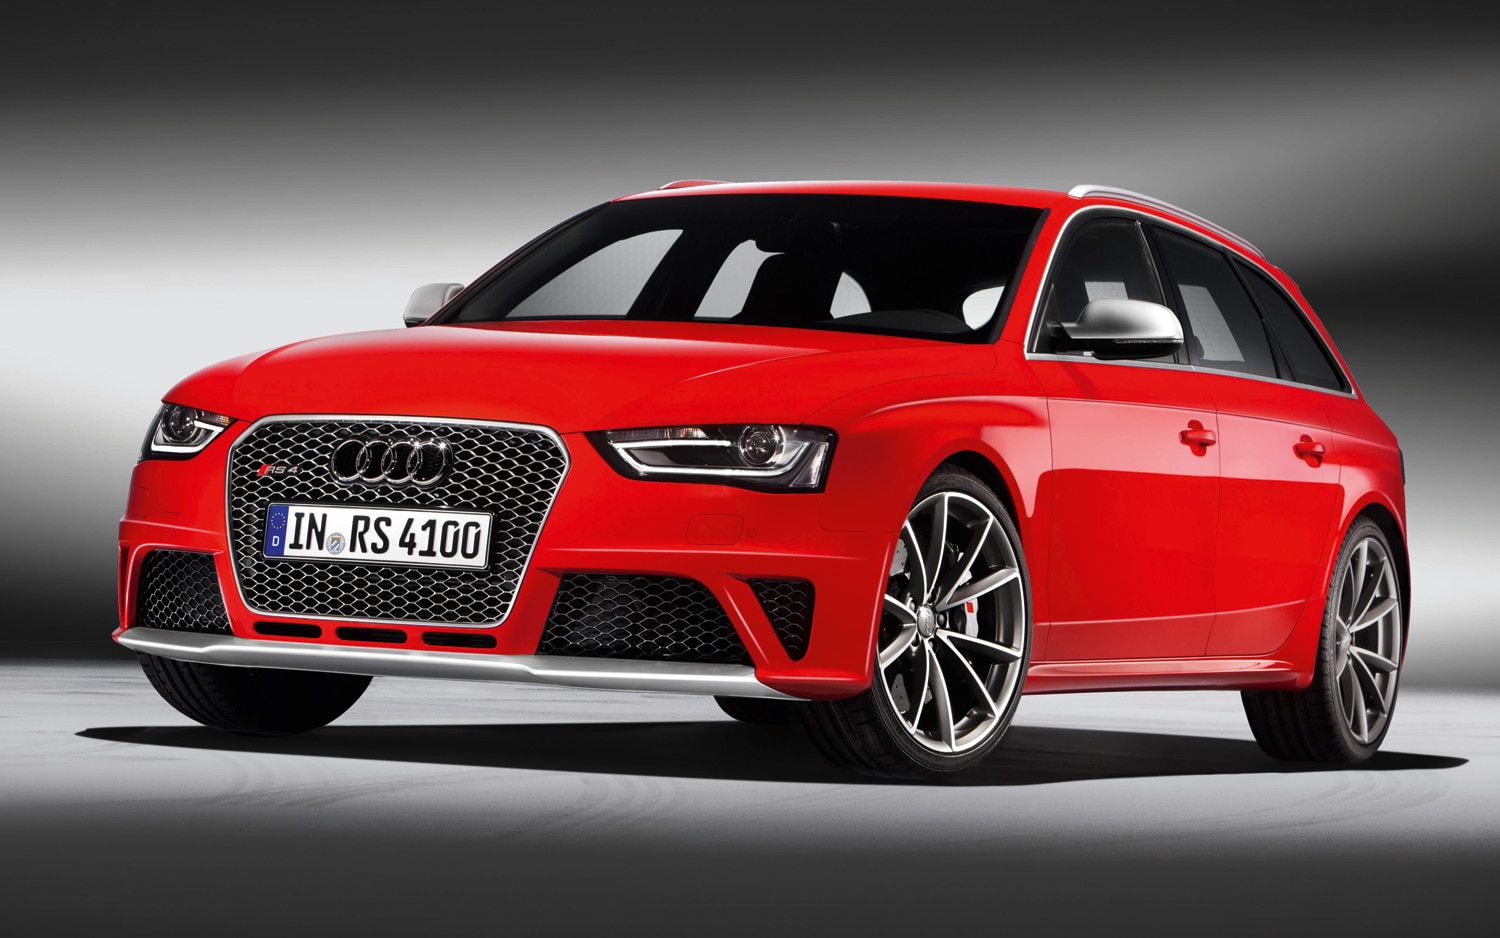 2013 Audi RS4 Avant Front Three Quarter 1